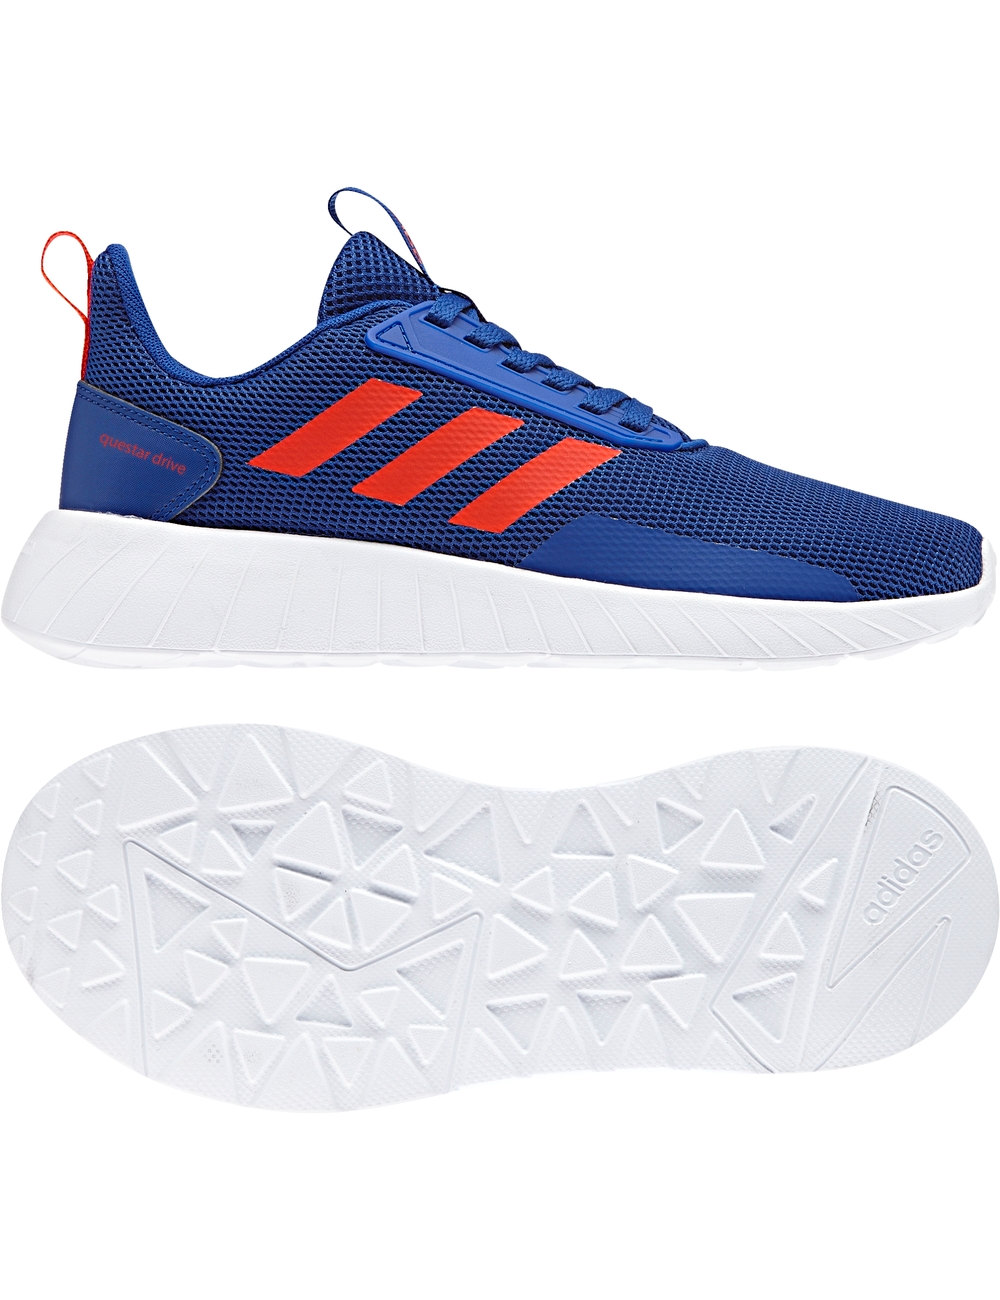 outlet store 5ac3d 59a69 Adidas-Sneakers-Sport-Shoes-Questar-Drive-K-boy-